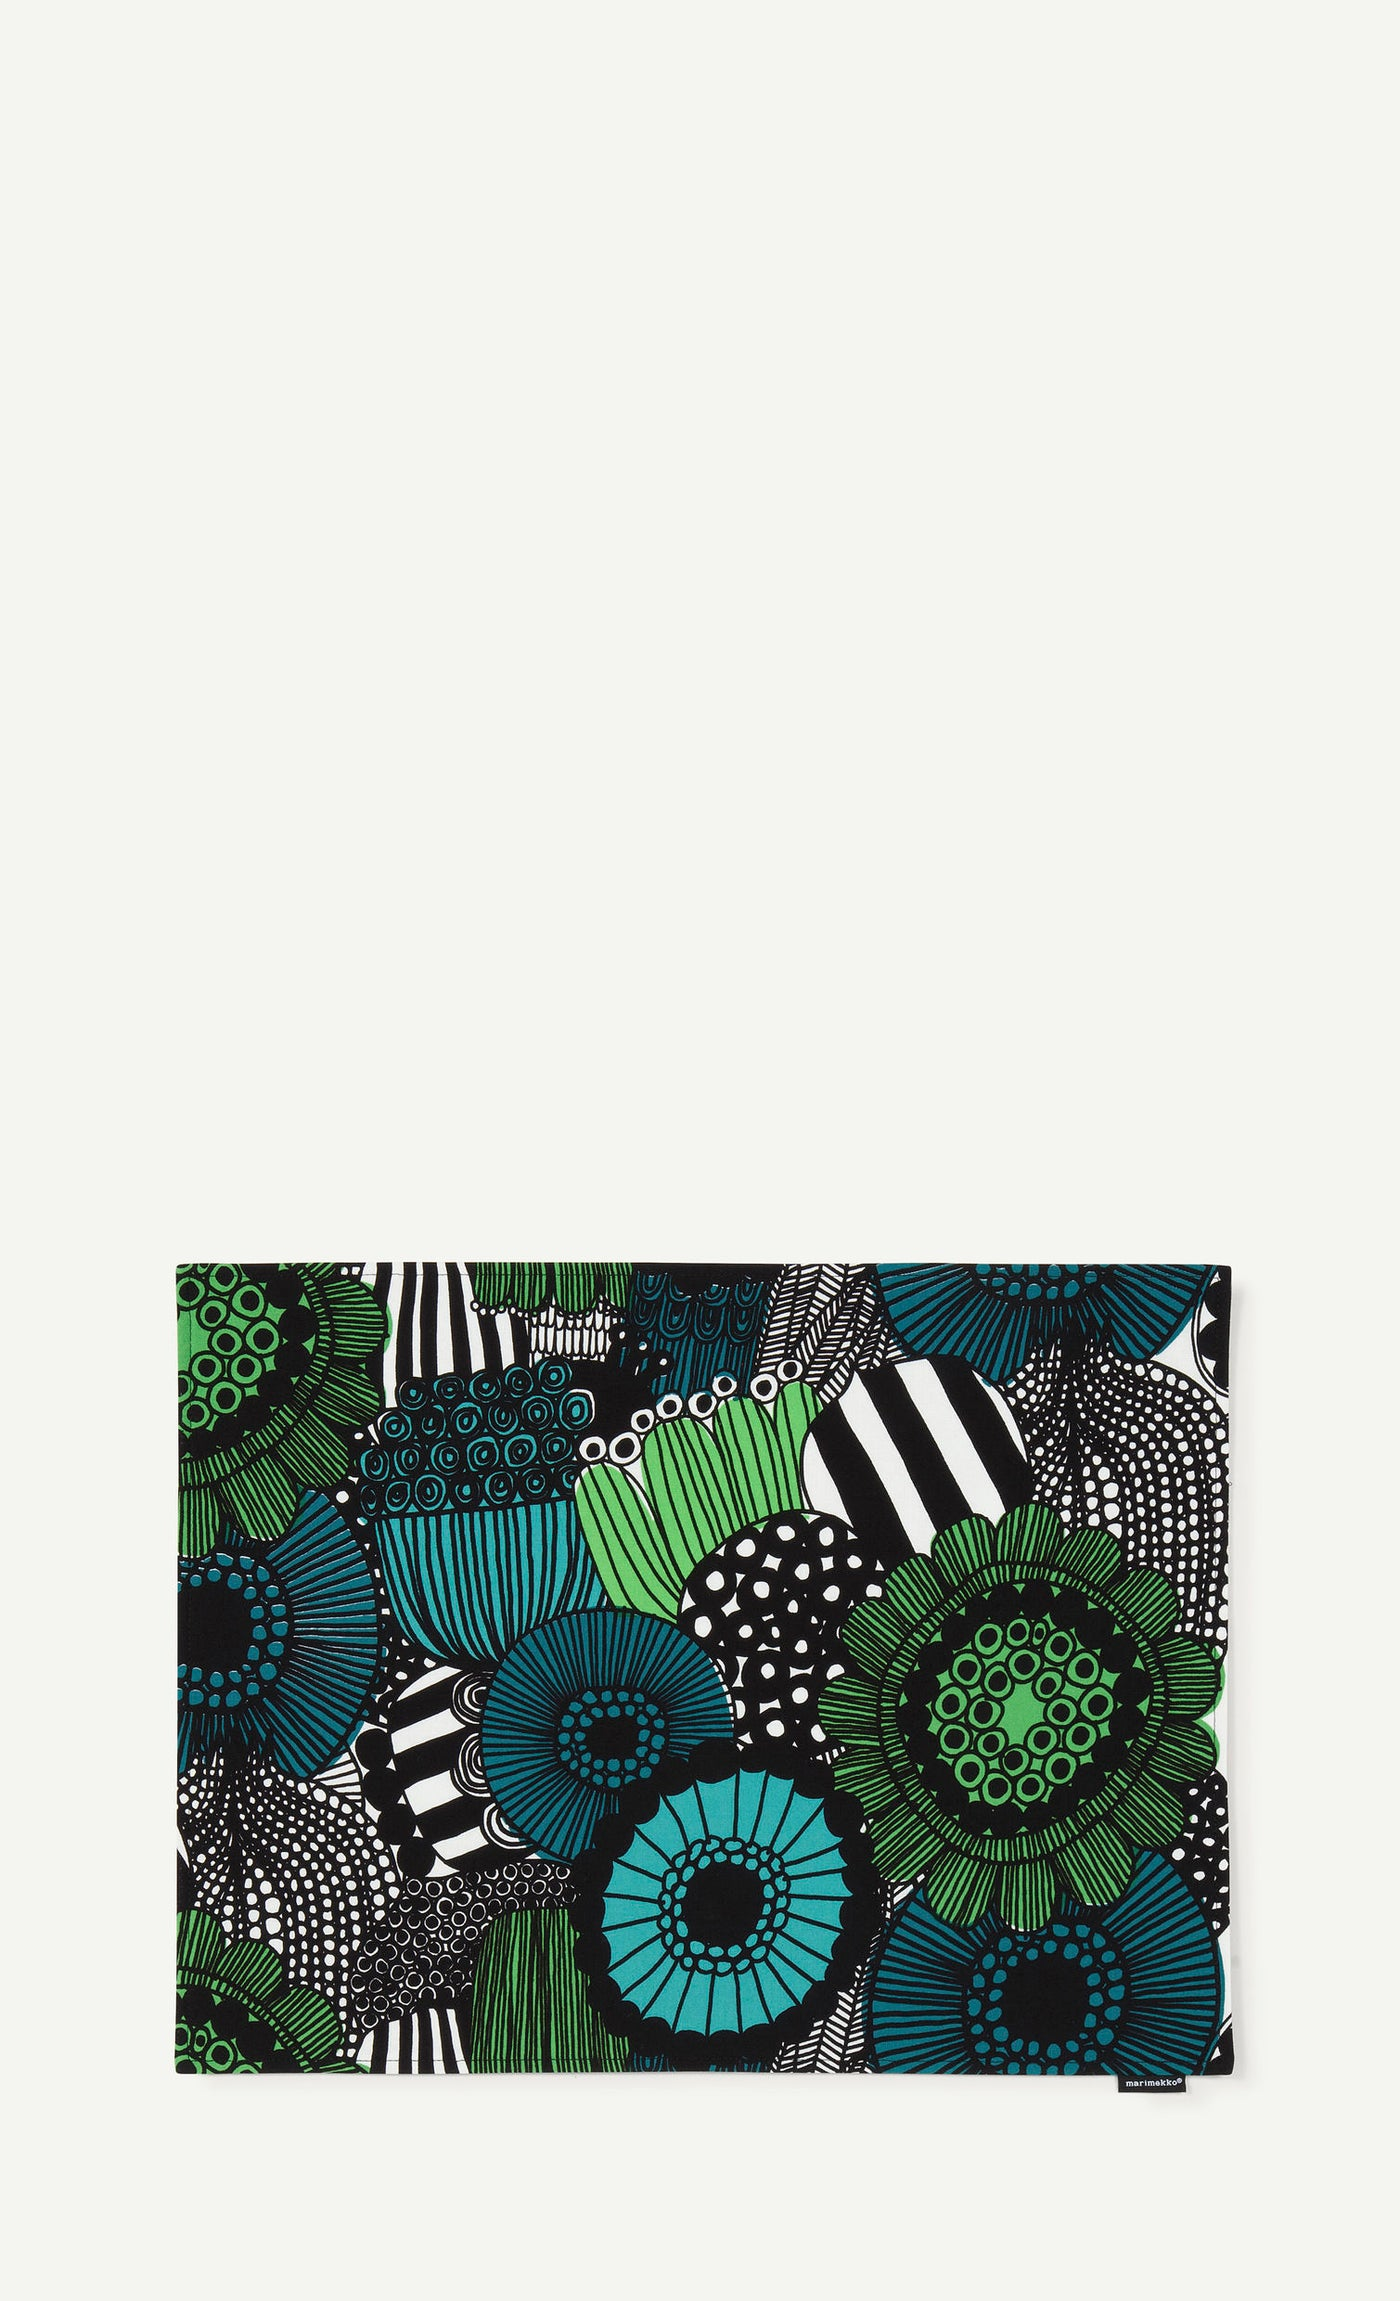 Marimekko Siirtolapuutarha Acrylic Coated Placemat Green, White, Black